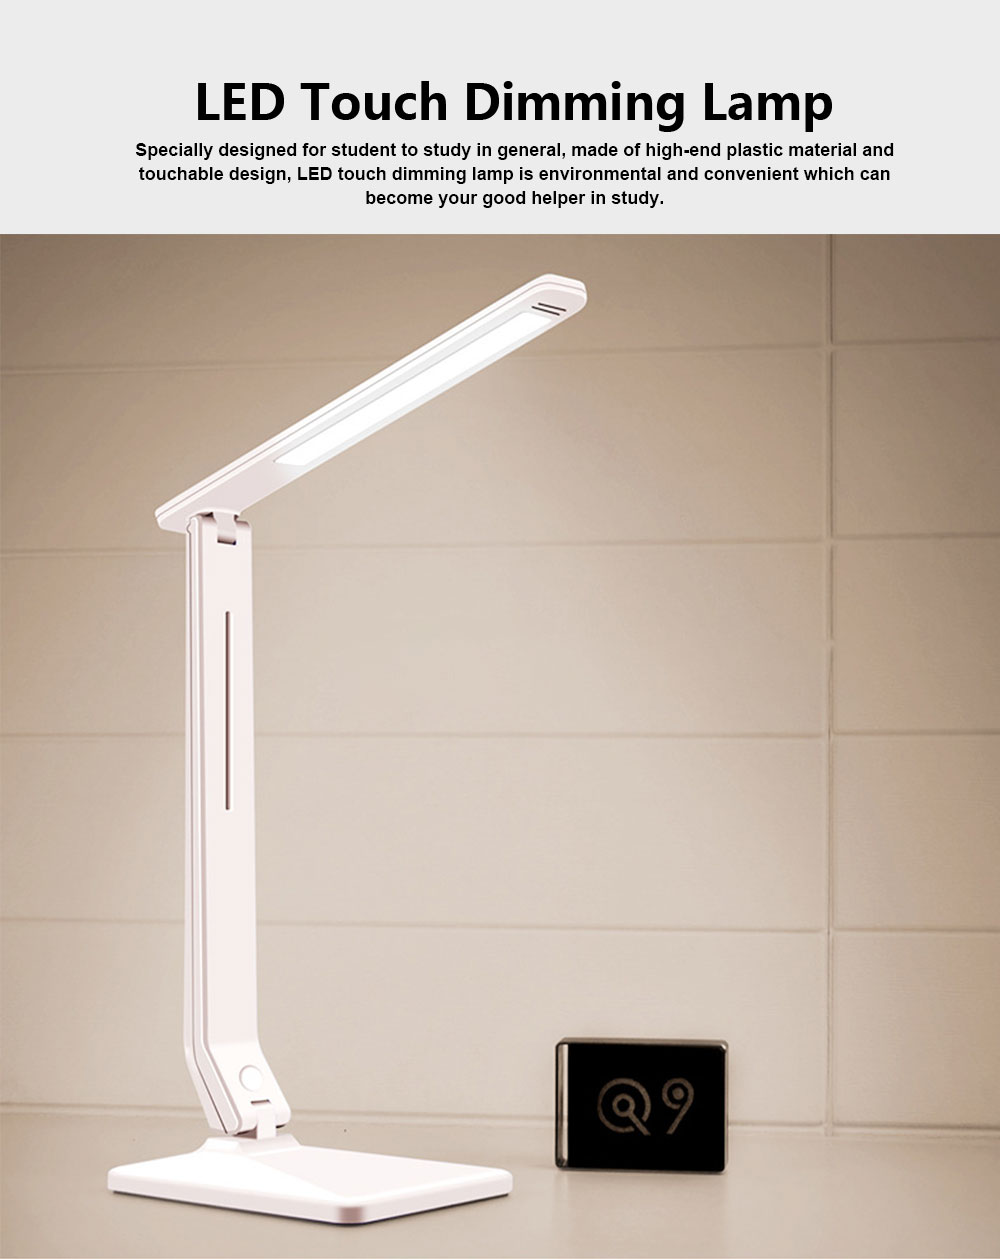 LED Touch Dimming Lamp Eye-protection Lamp for Study Chargeable Bedside Lamp for Children 0